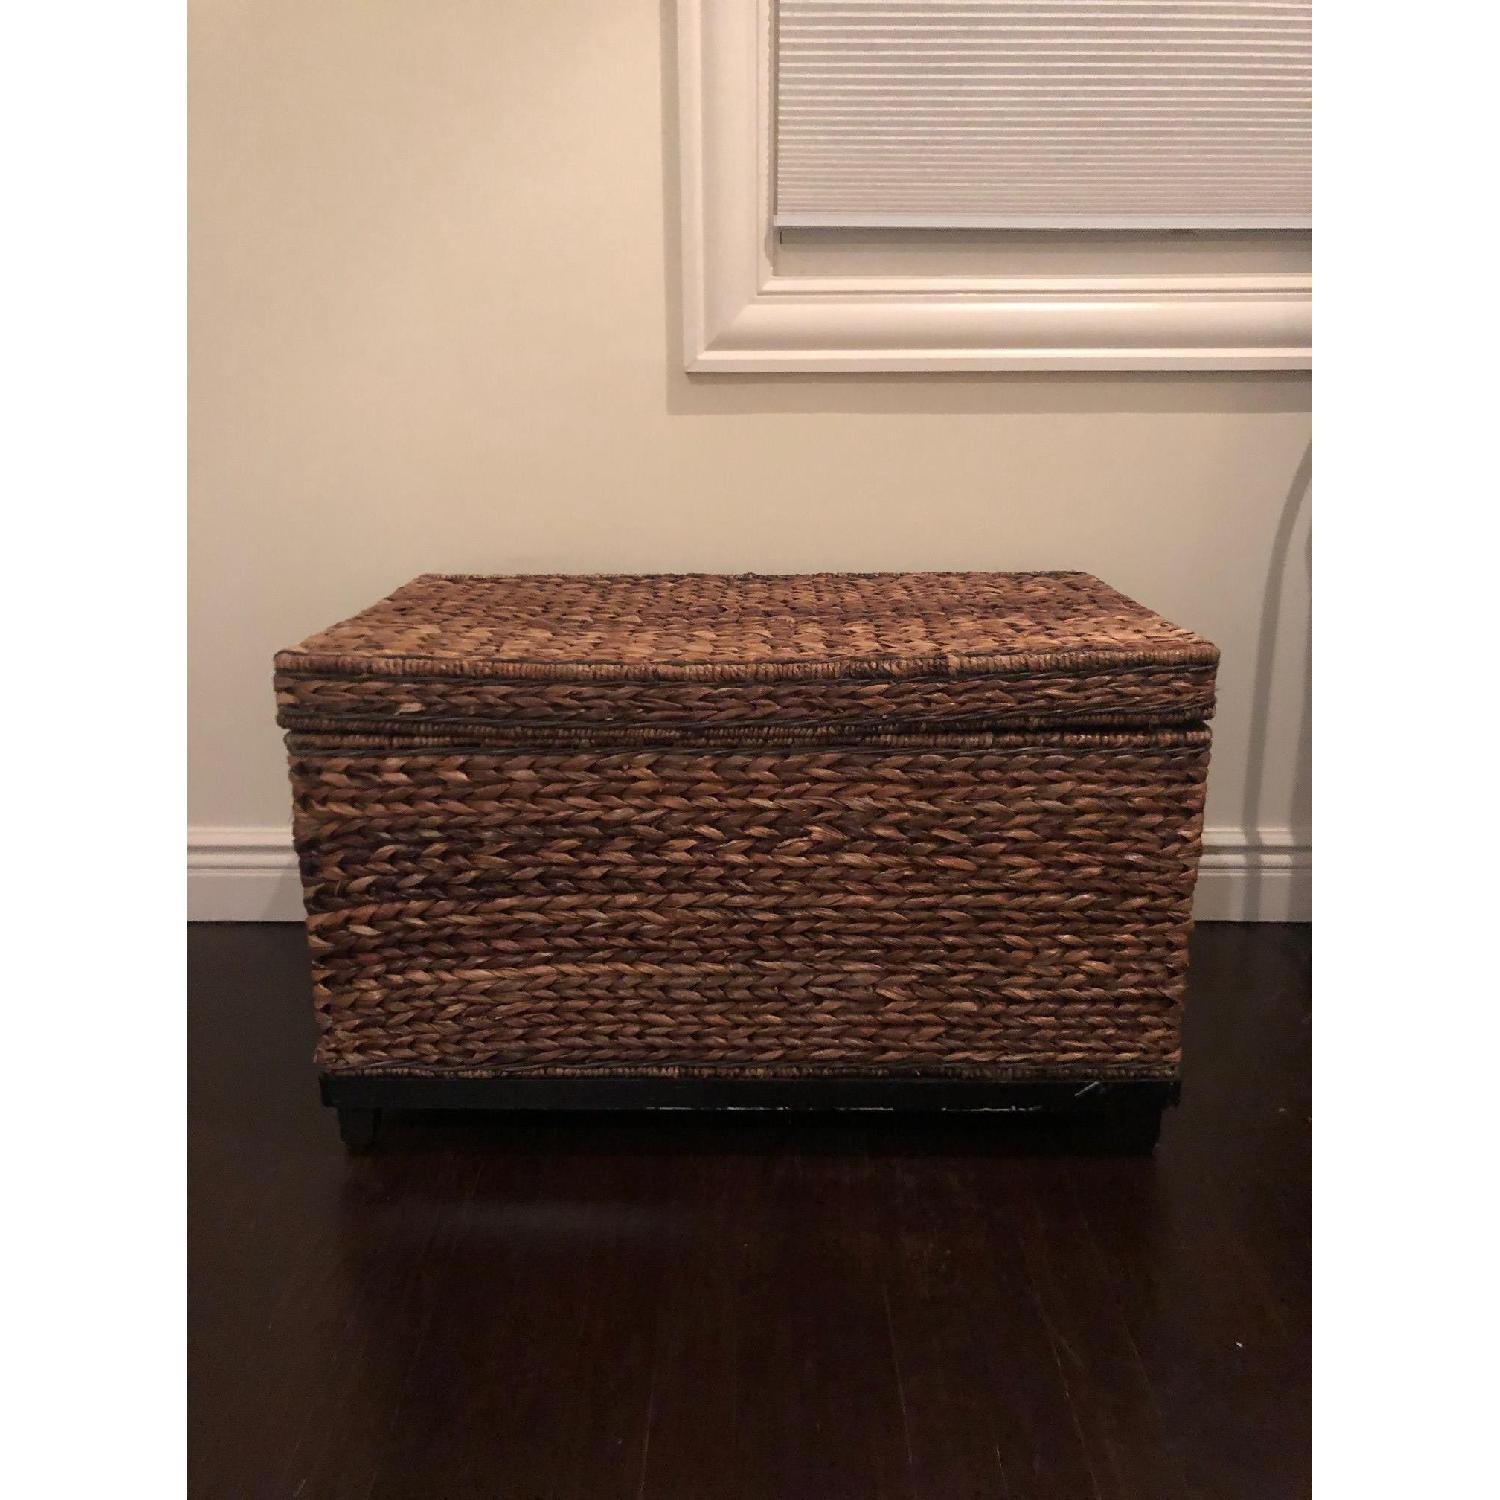 Target Rectangle Wicker Storage Ottoman Bench - image-1